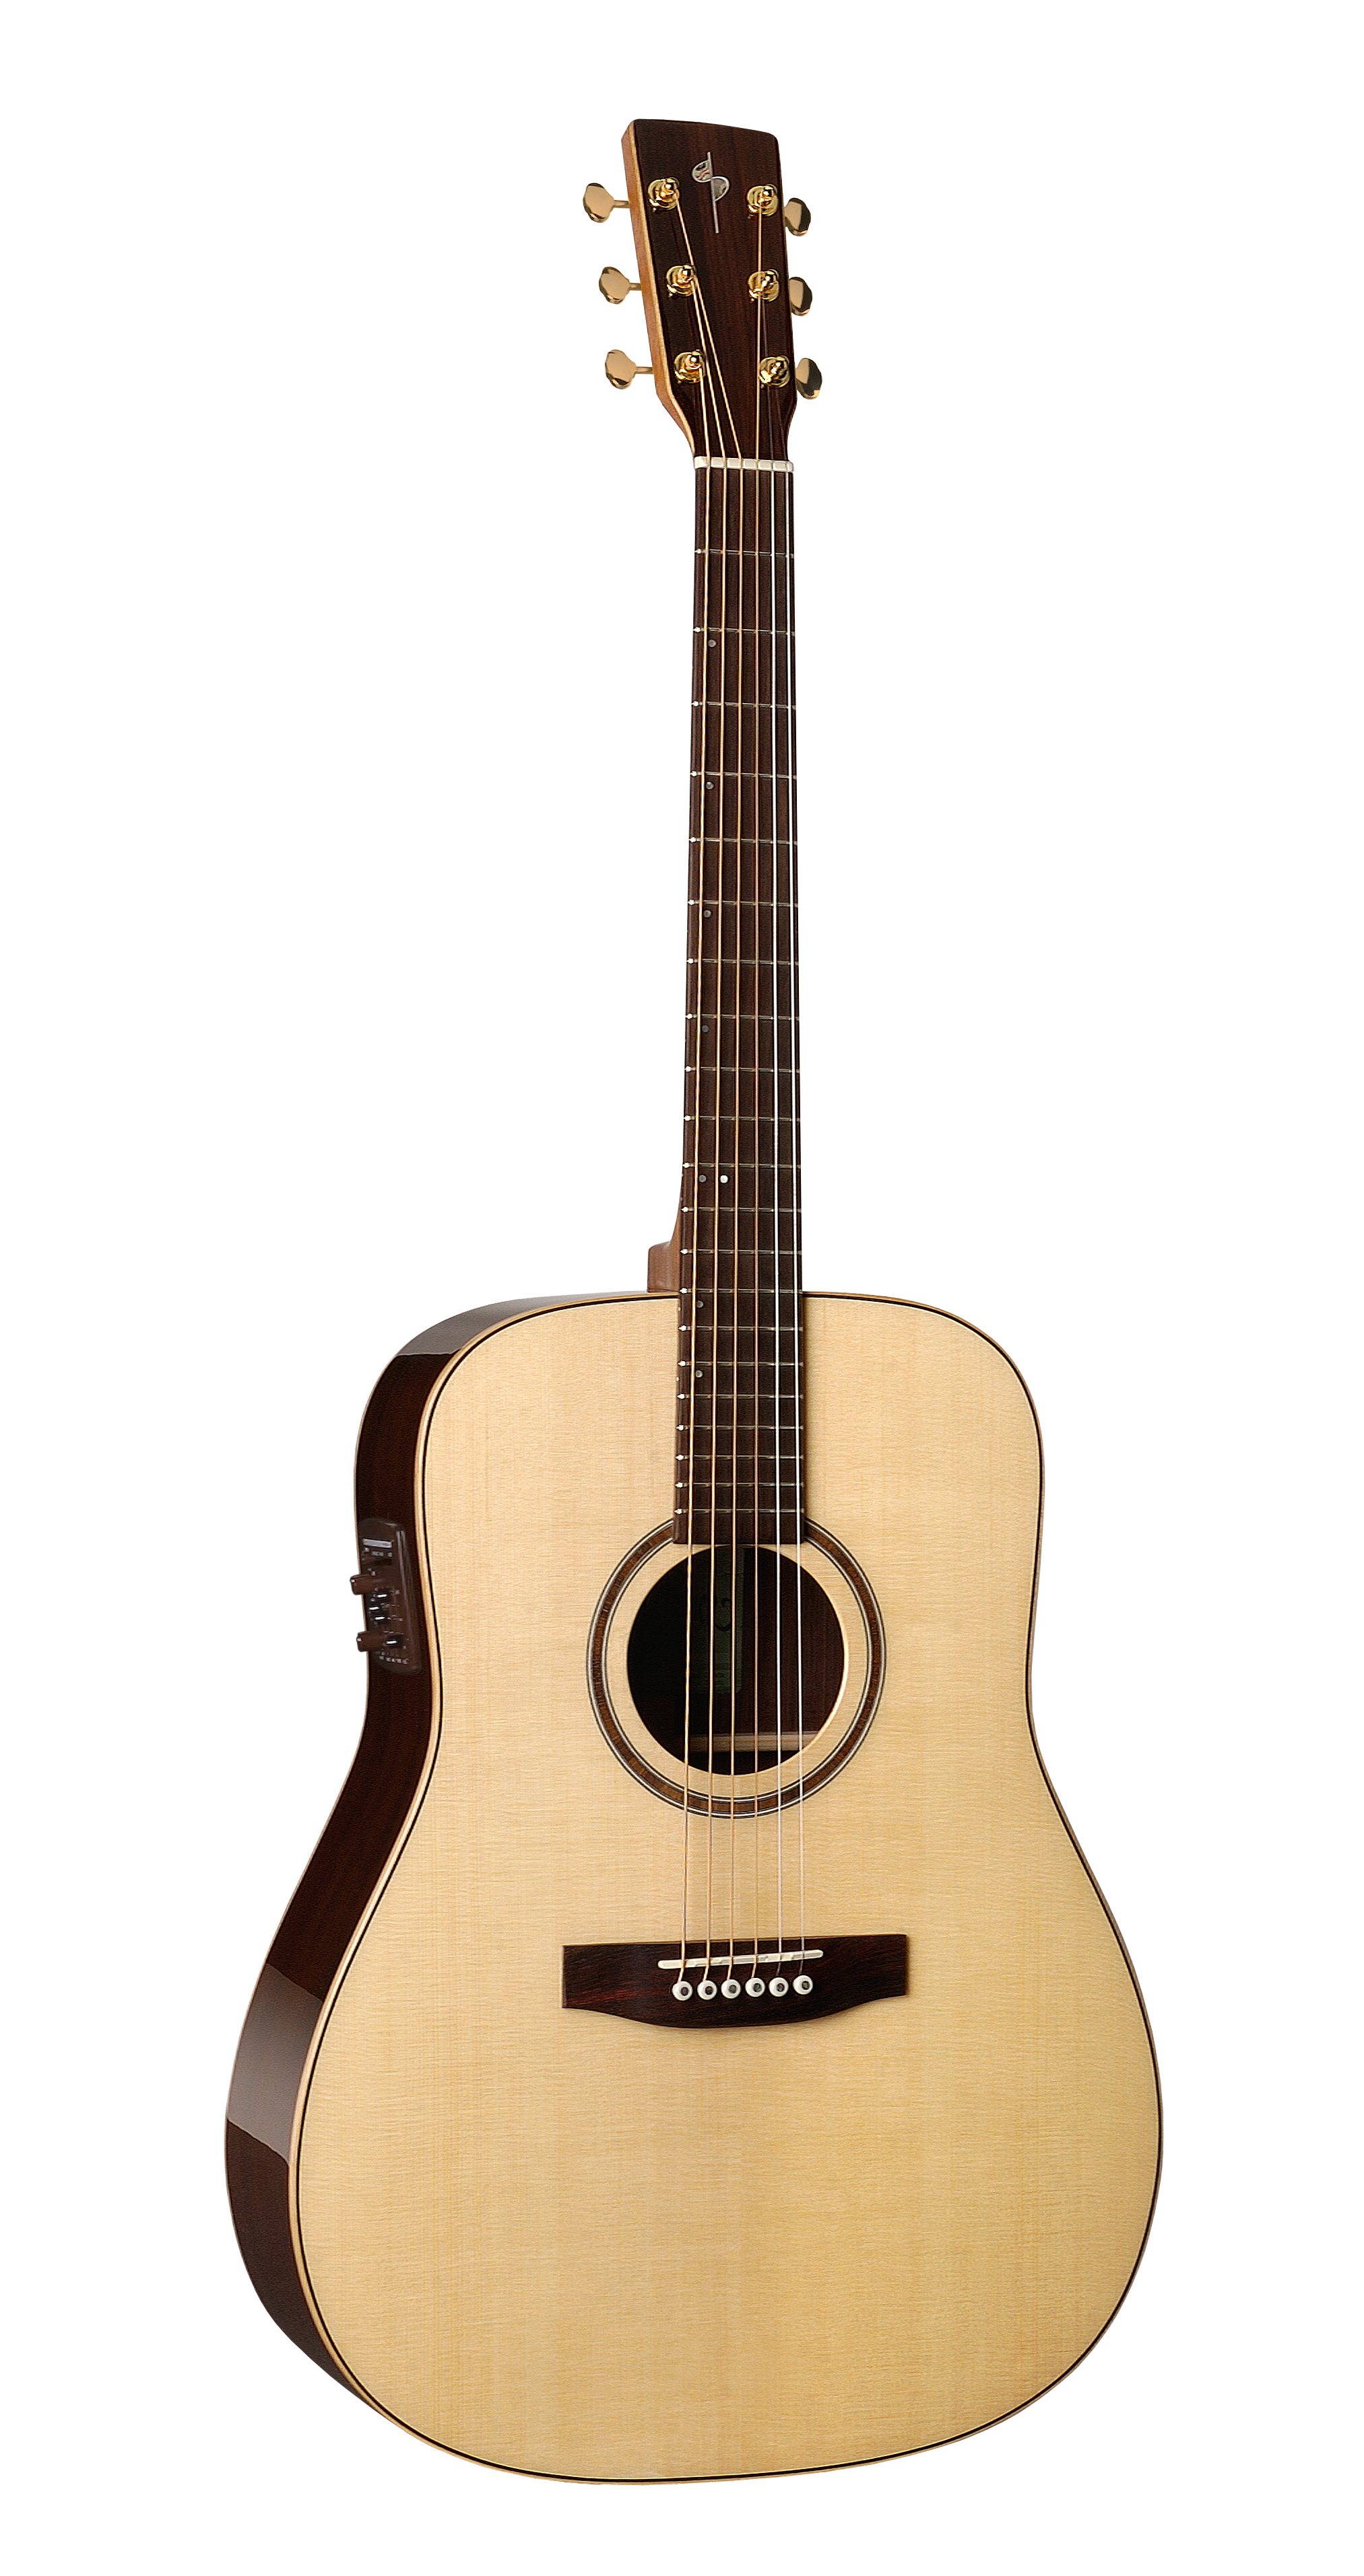 Simon & Patrick 33287 Showcase Rosewood Acoustic Electric Guitar w/ B-Band A6T